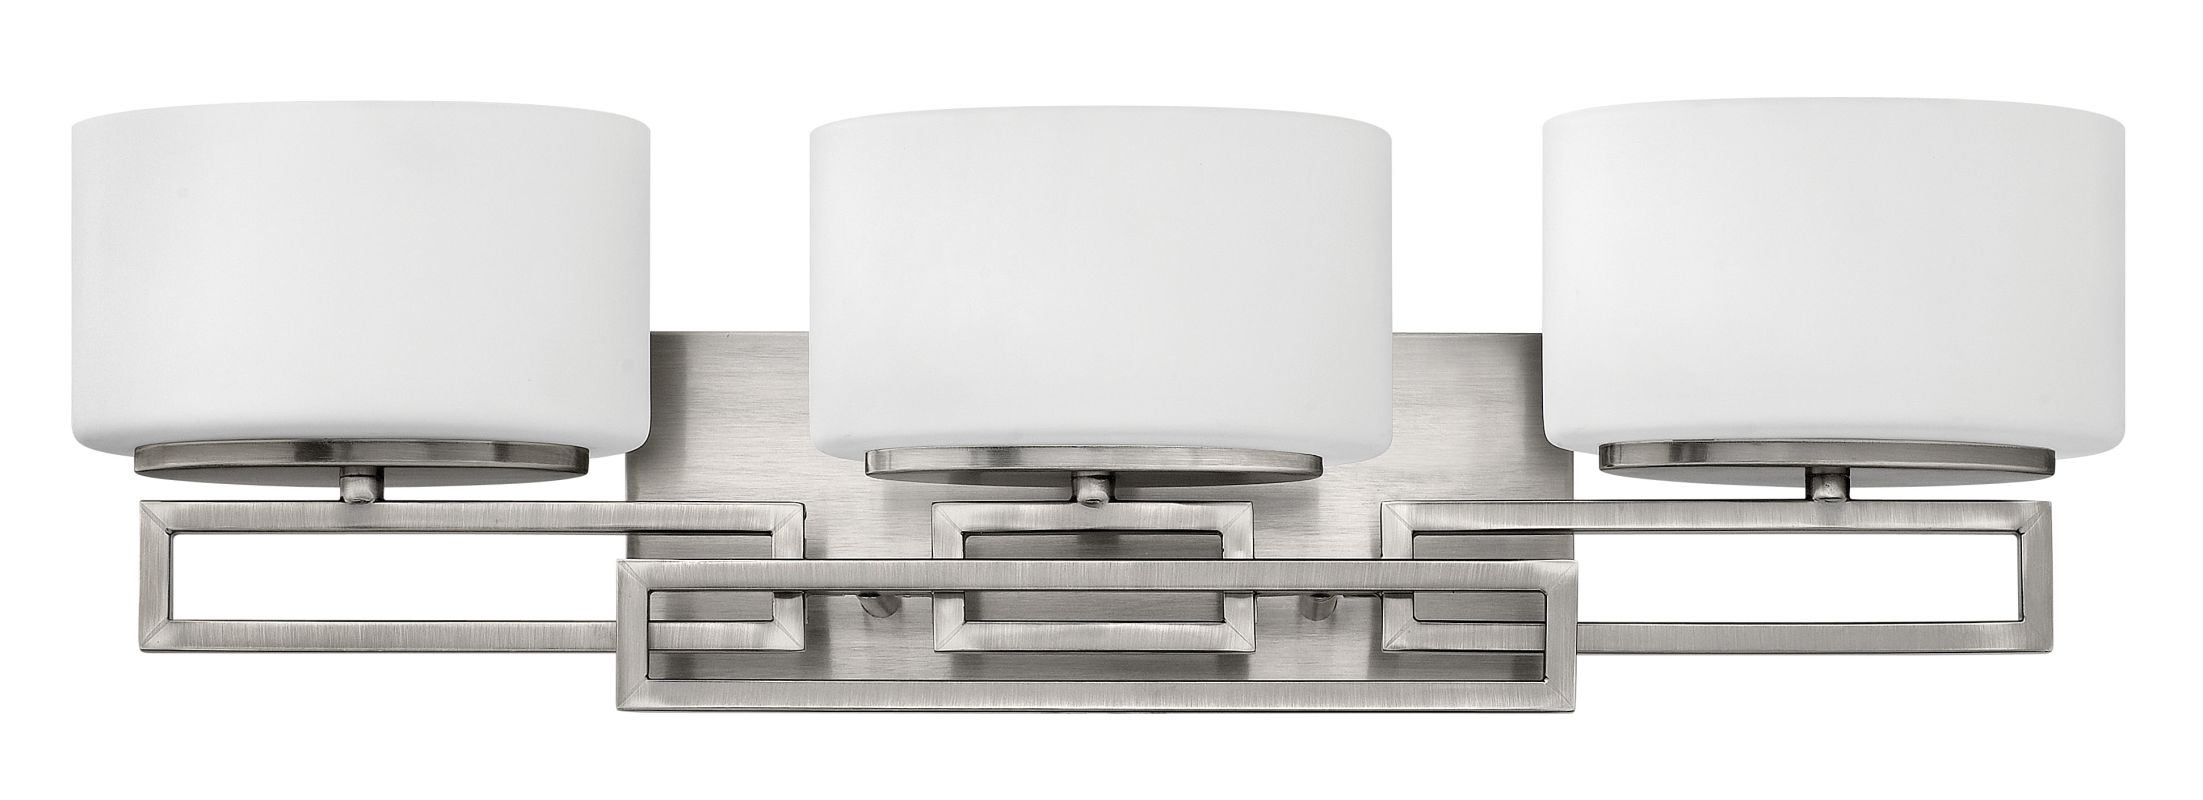 Hinkley Lighting 5103 3 Light Bathroom Vanity Light from the Lanza